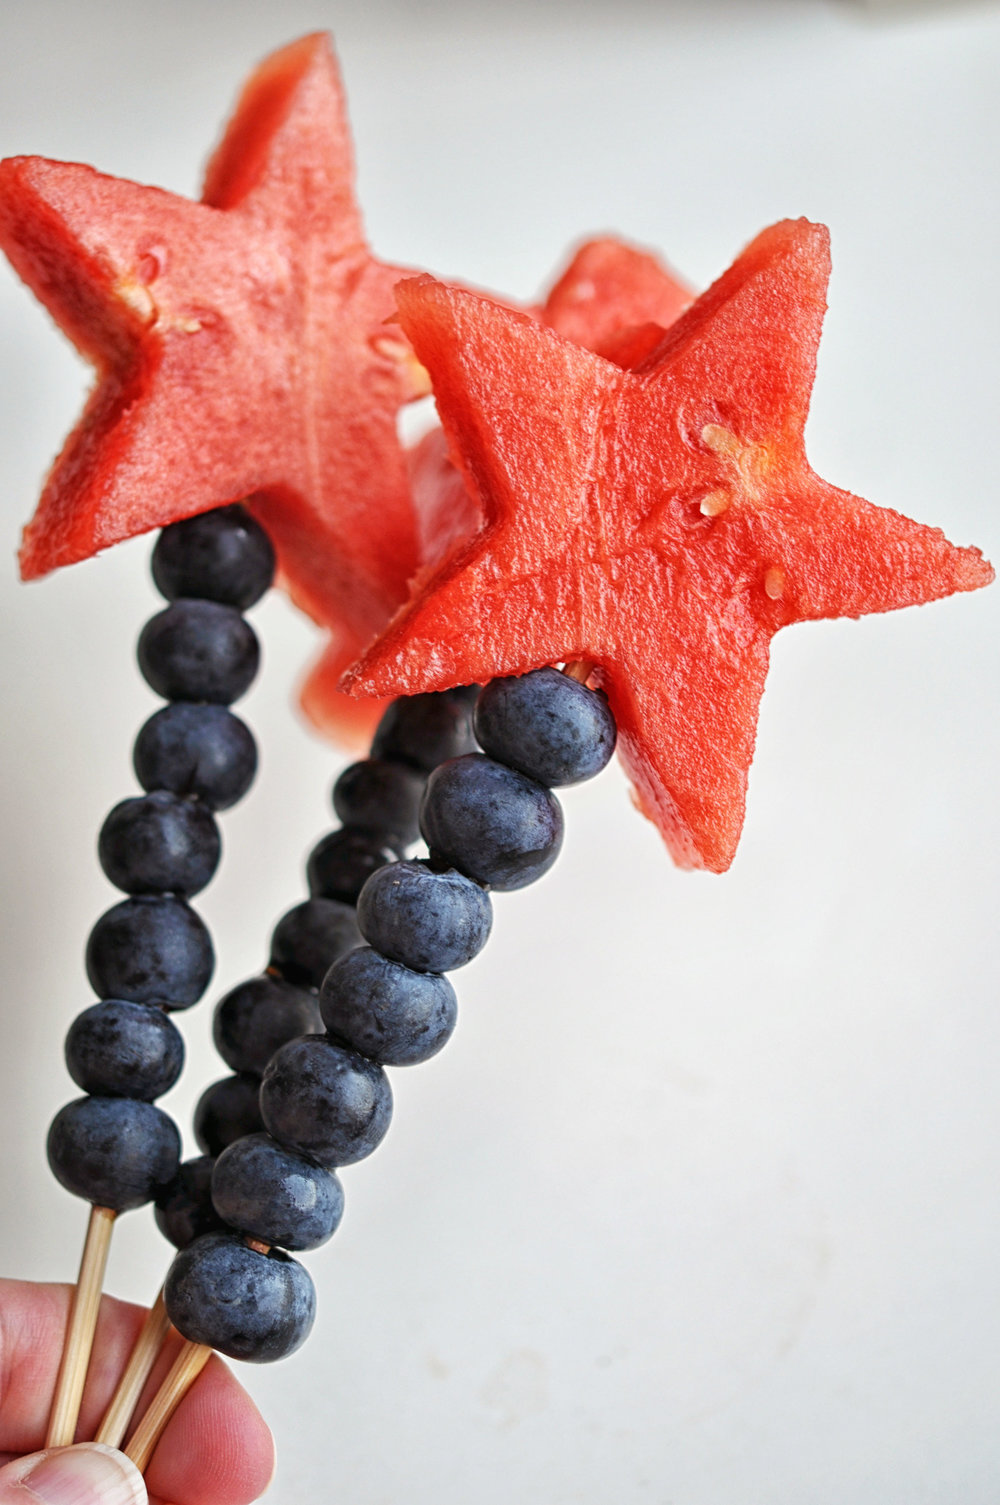 Watermelon & Blueberry Sparklers - a perfect 4th of July treat | Shiny Happy Bright